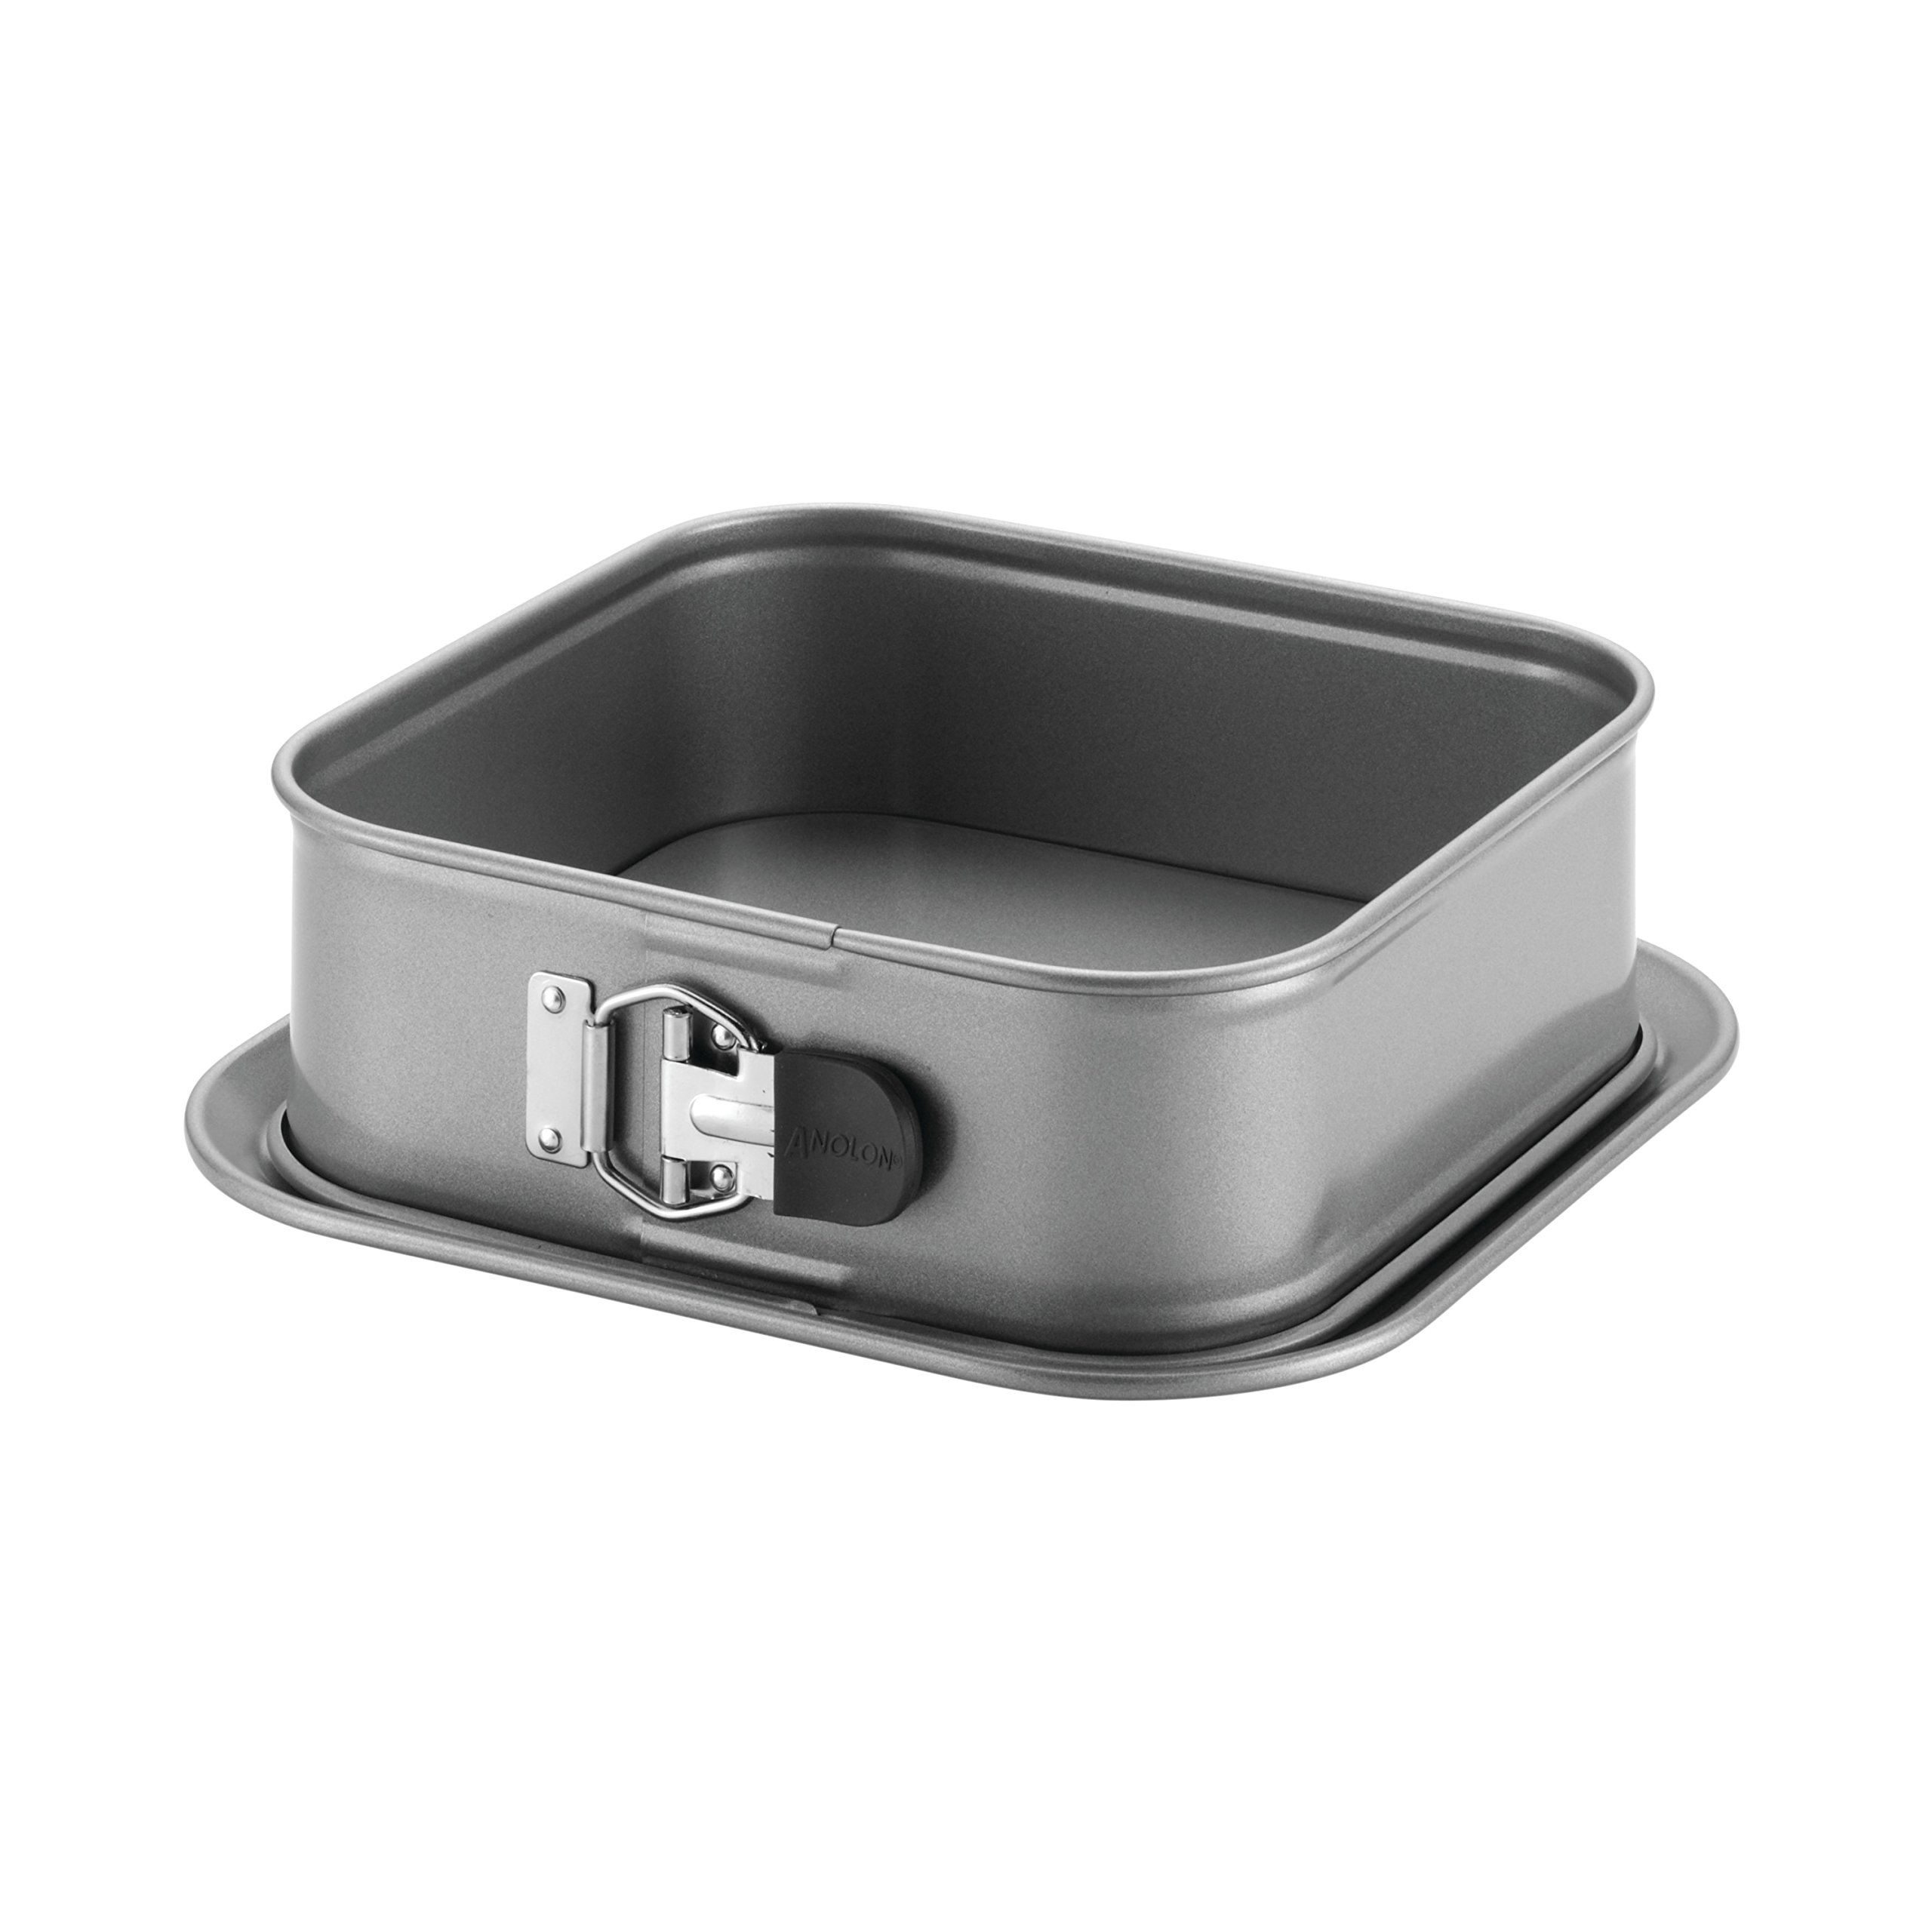 Anolon Advanced Nonstick Bakeware 9-Inch Square Springform Dessert Pan